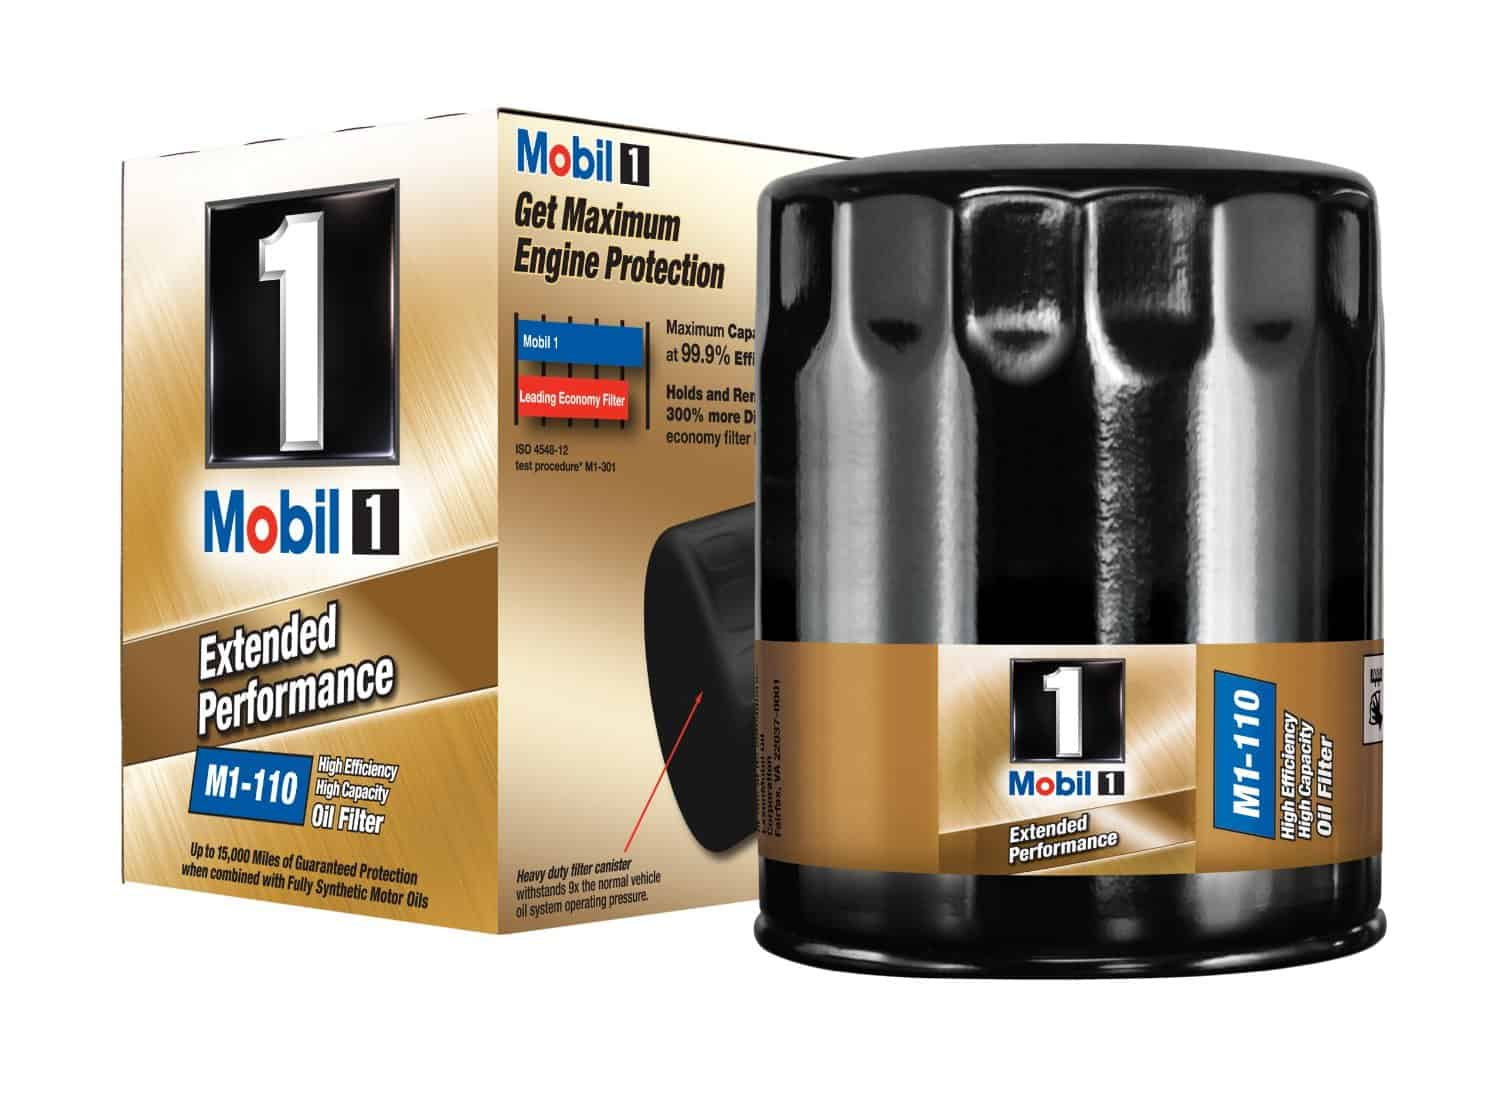 Mobil 1 Filters